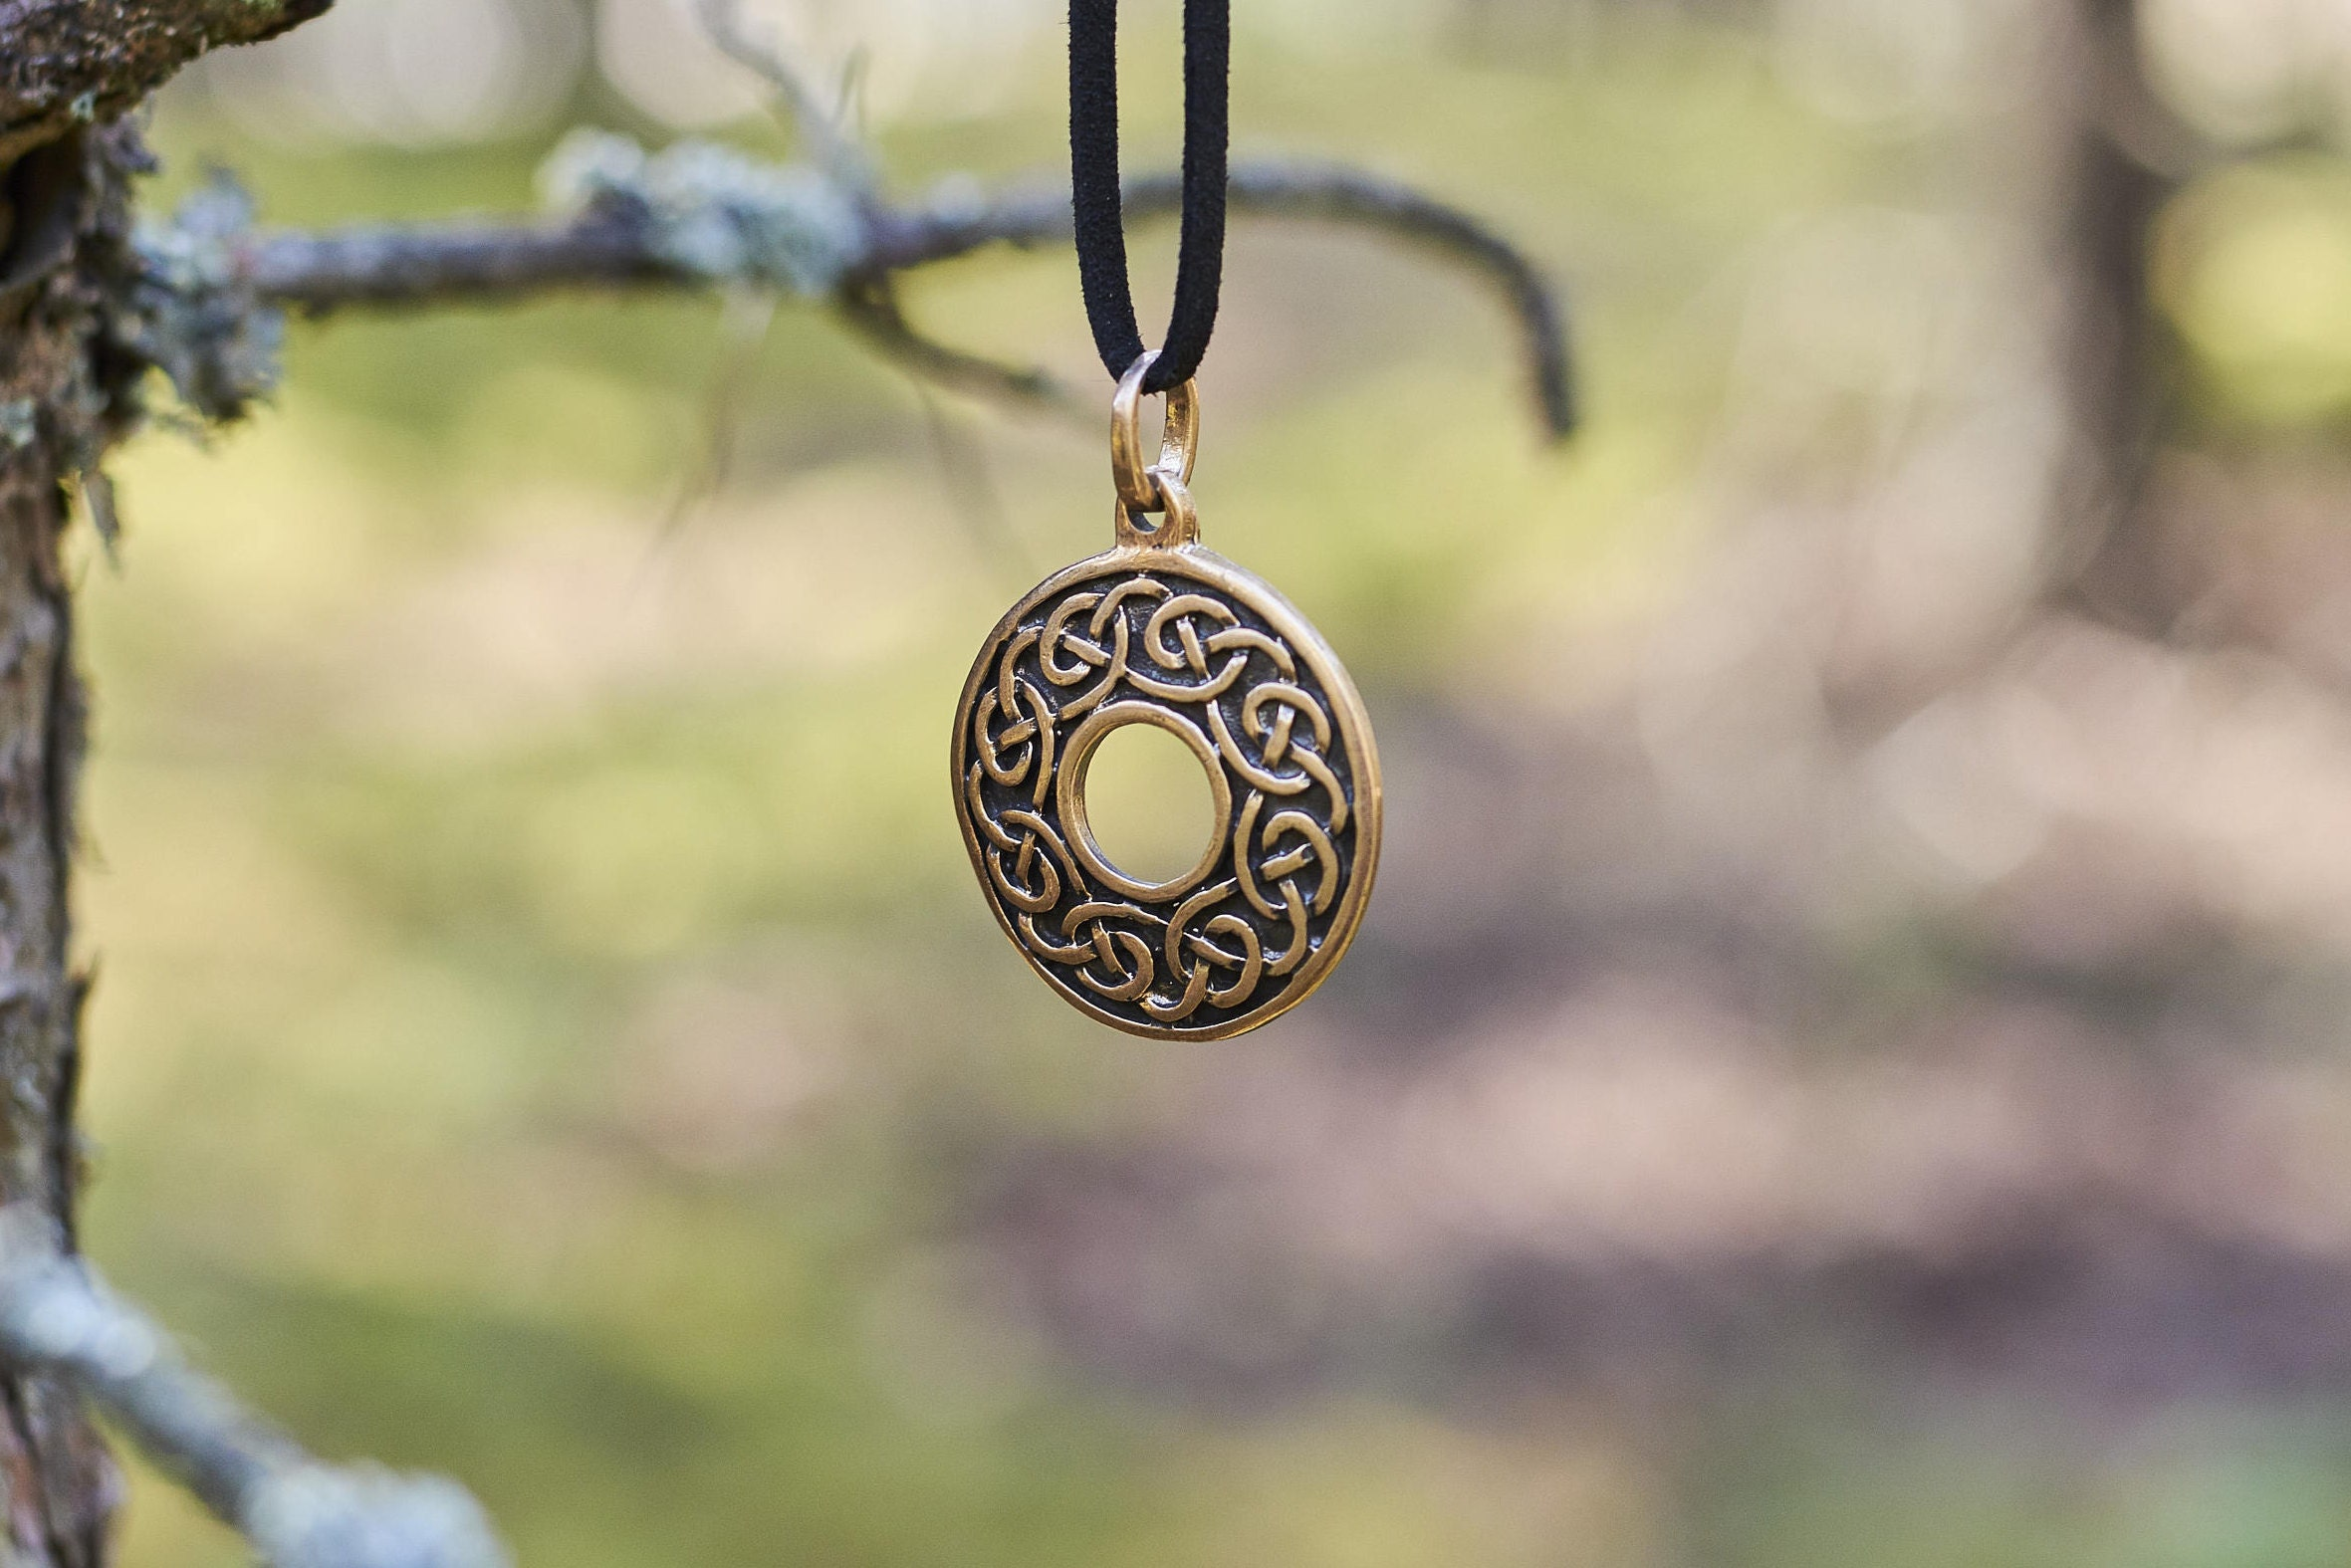 Celtic necklace celtic jewelry womens necklace mens necklace celtic necklace celtic jewelry womens necklace mens necklace pagan jewelry pagan aloadofball Image collections